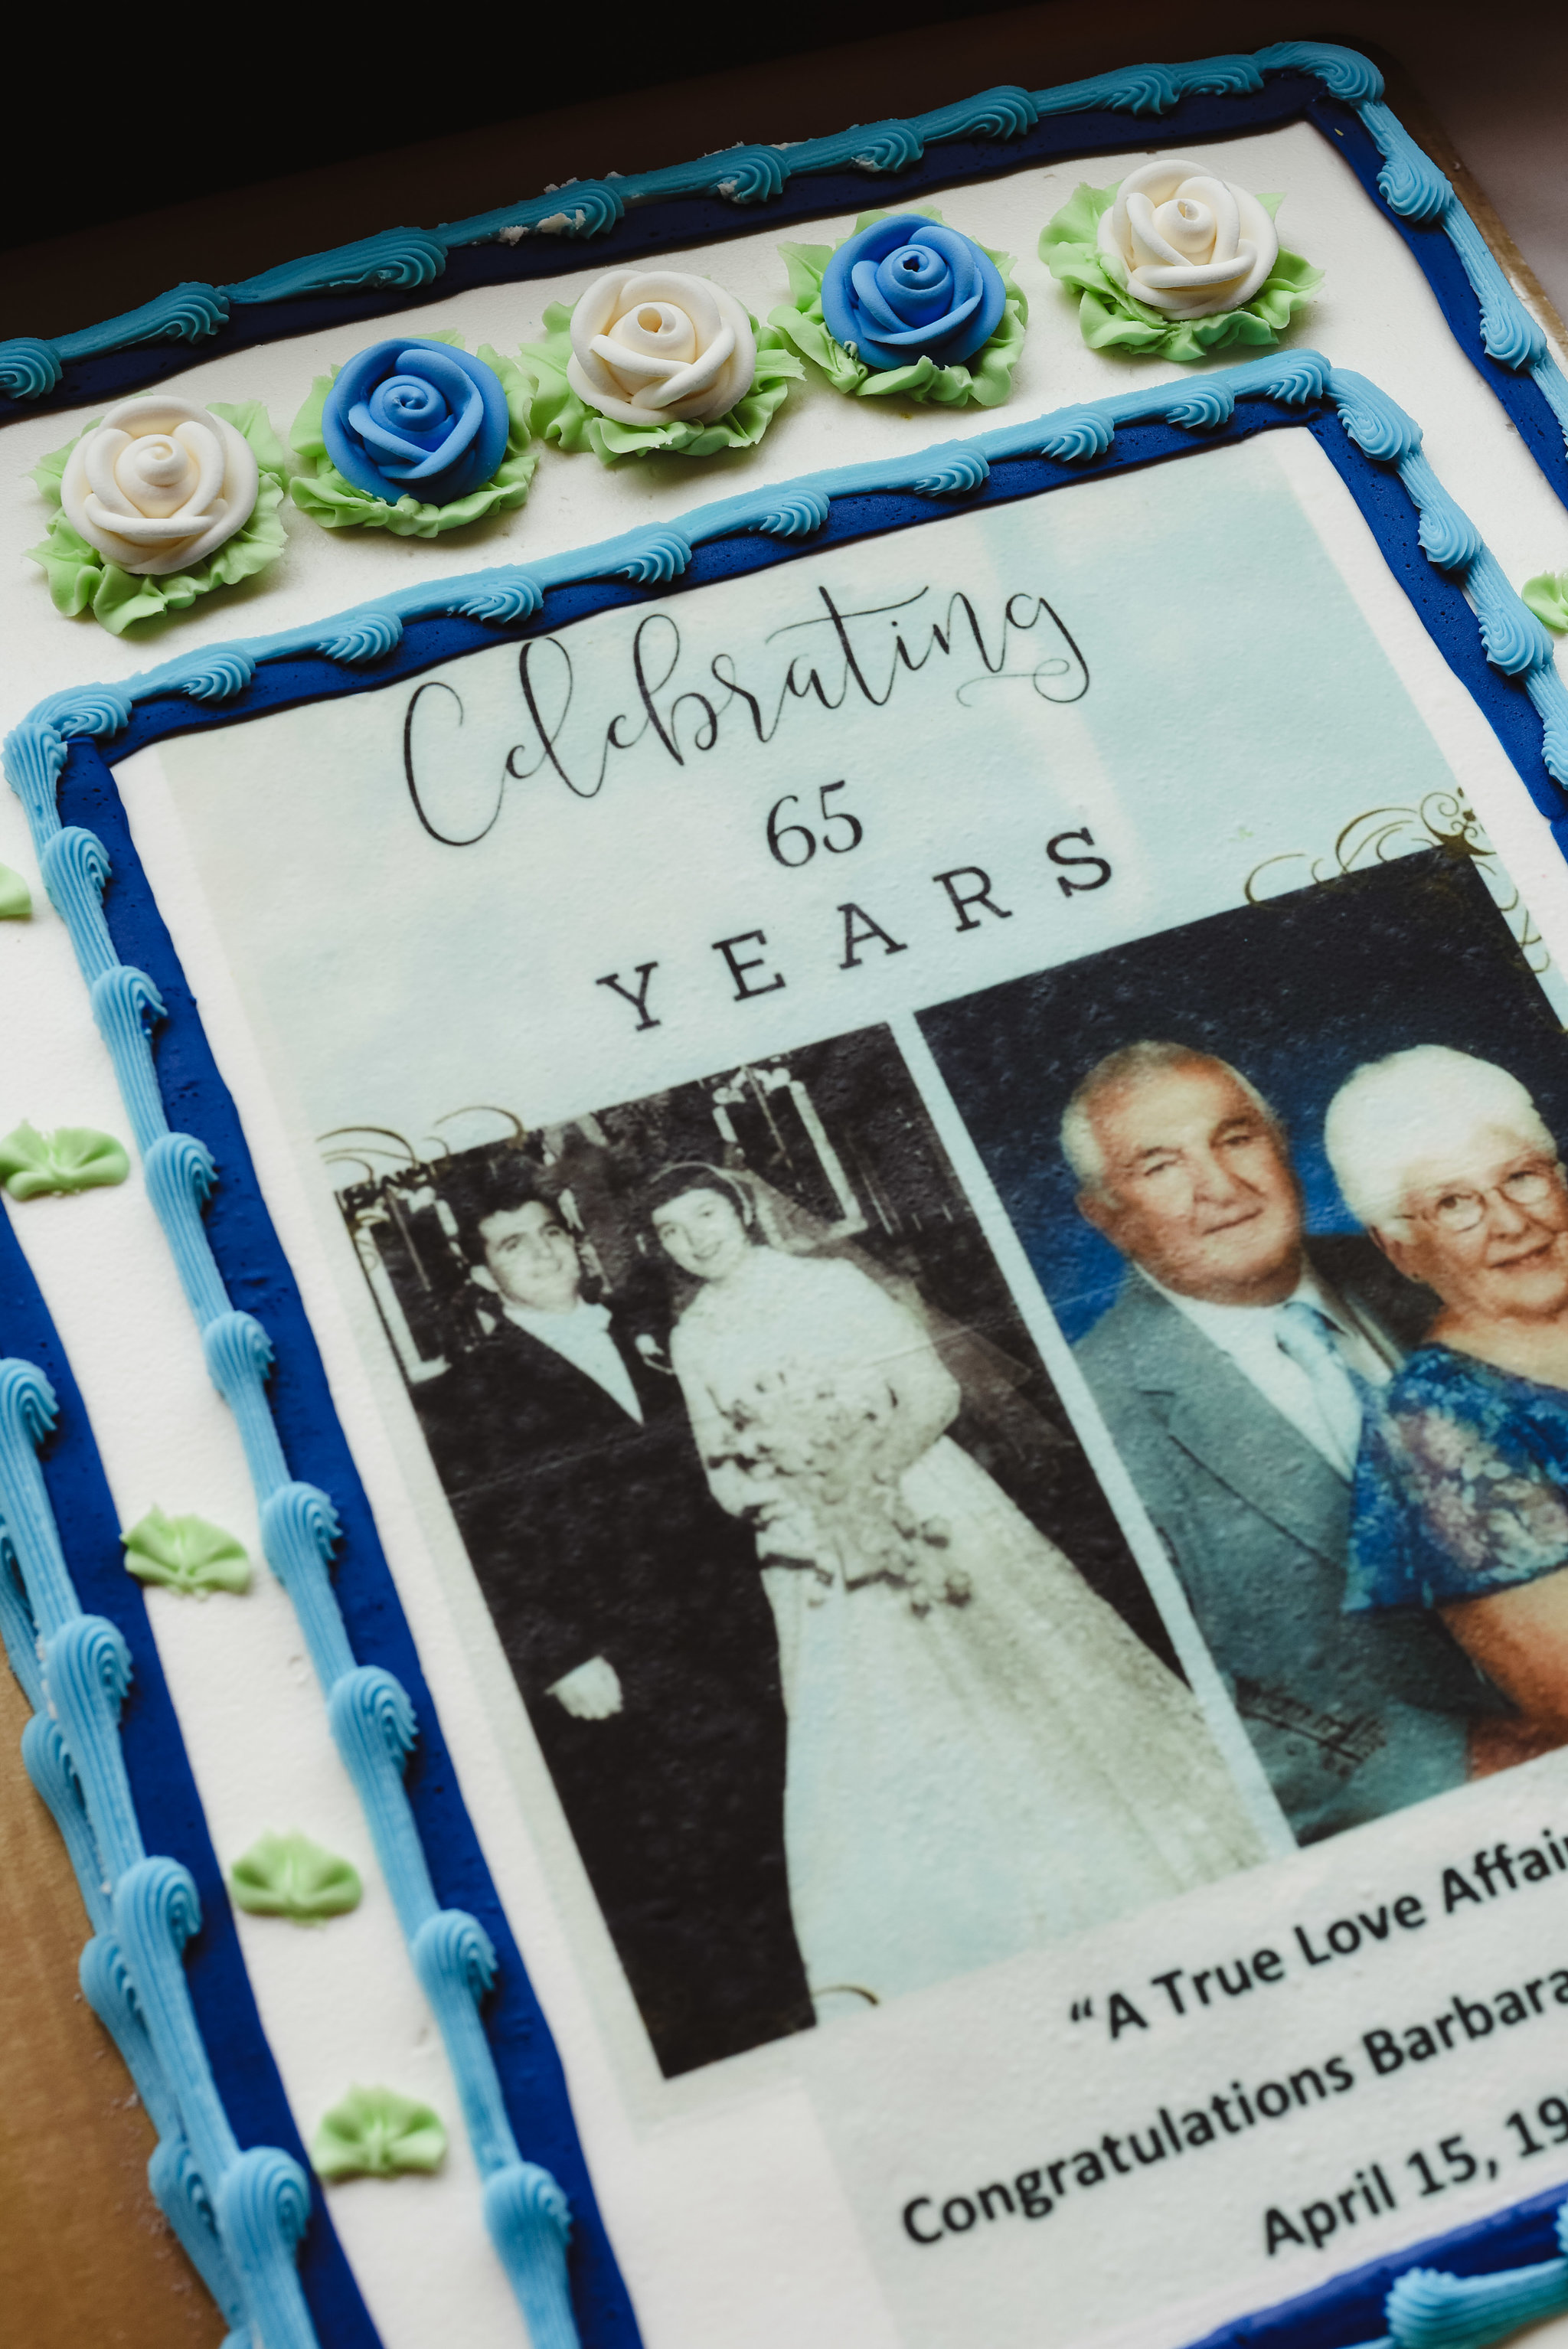 65th anniversary surprise party event photography auburn syracuse new york